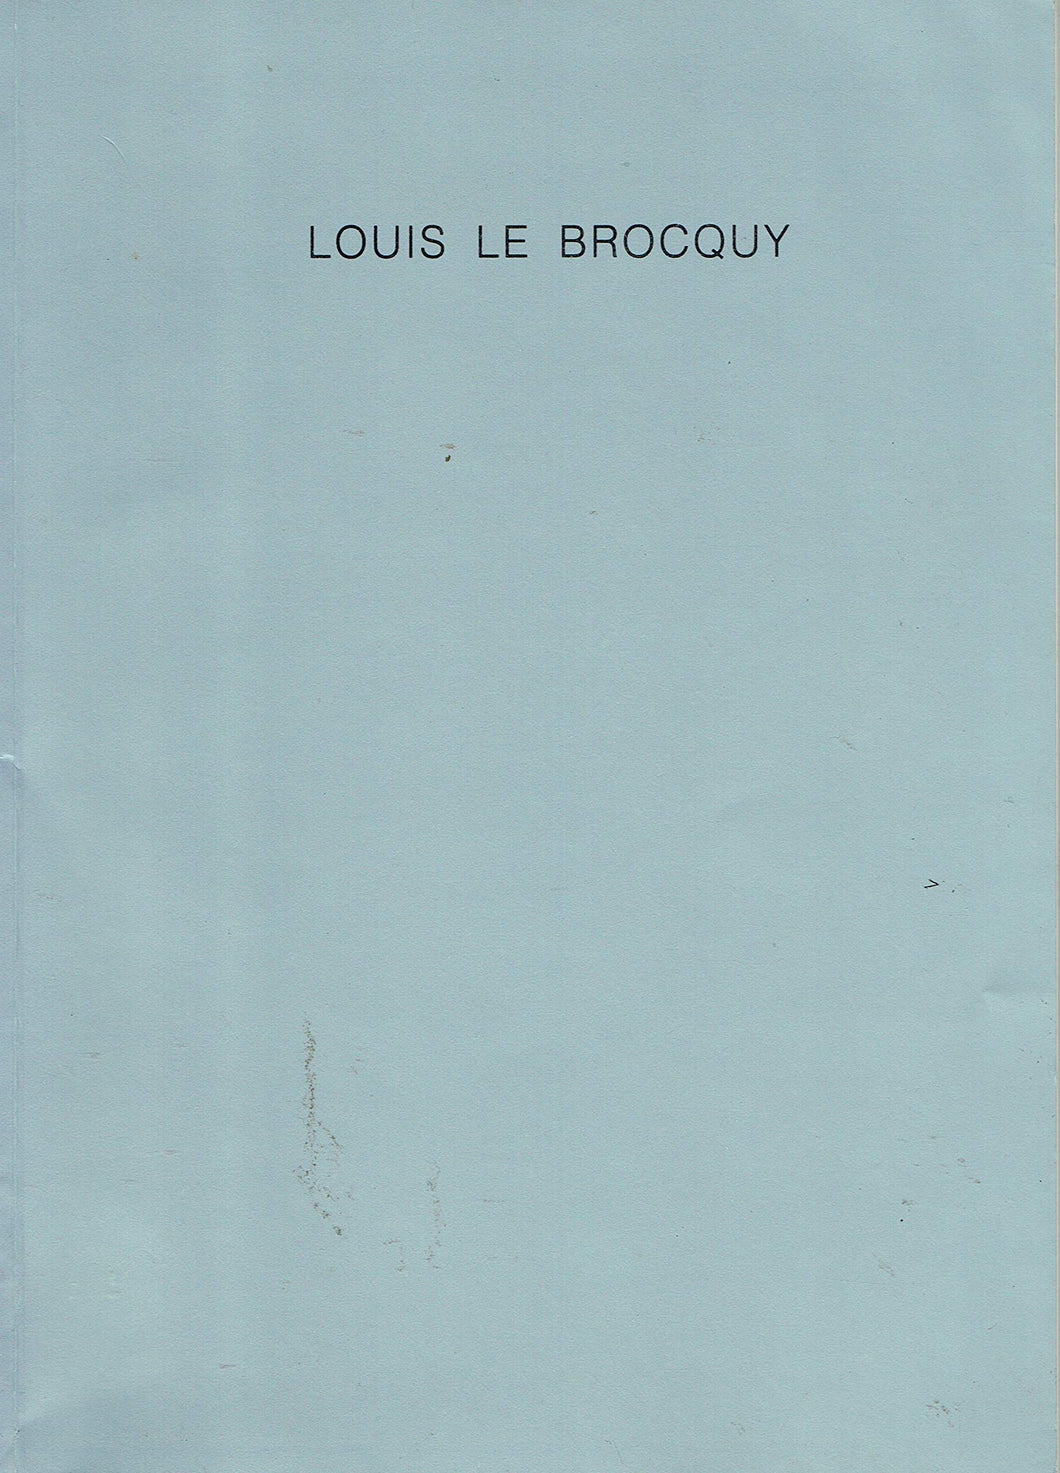 Louis Le Brocquy. Paintings 1940-1990. Hibernian Fine Art In Association With Kerlin Gallery, January 1991.